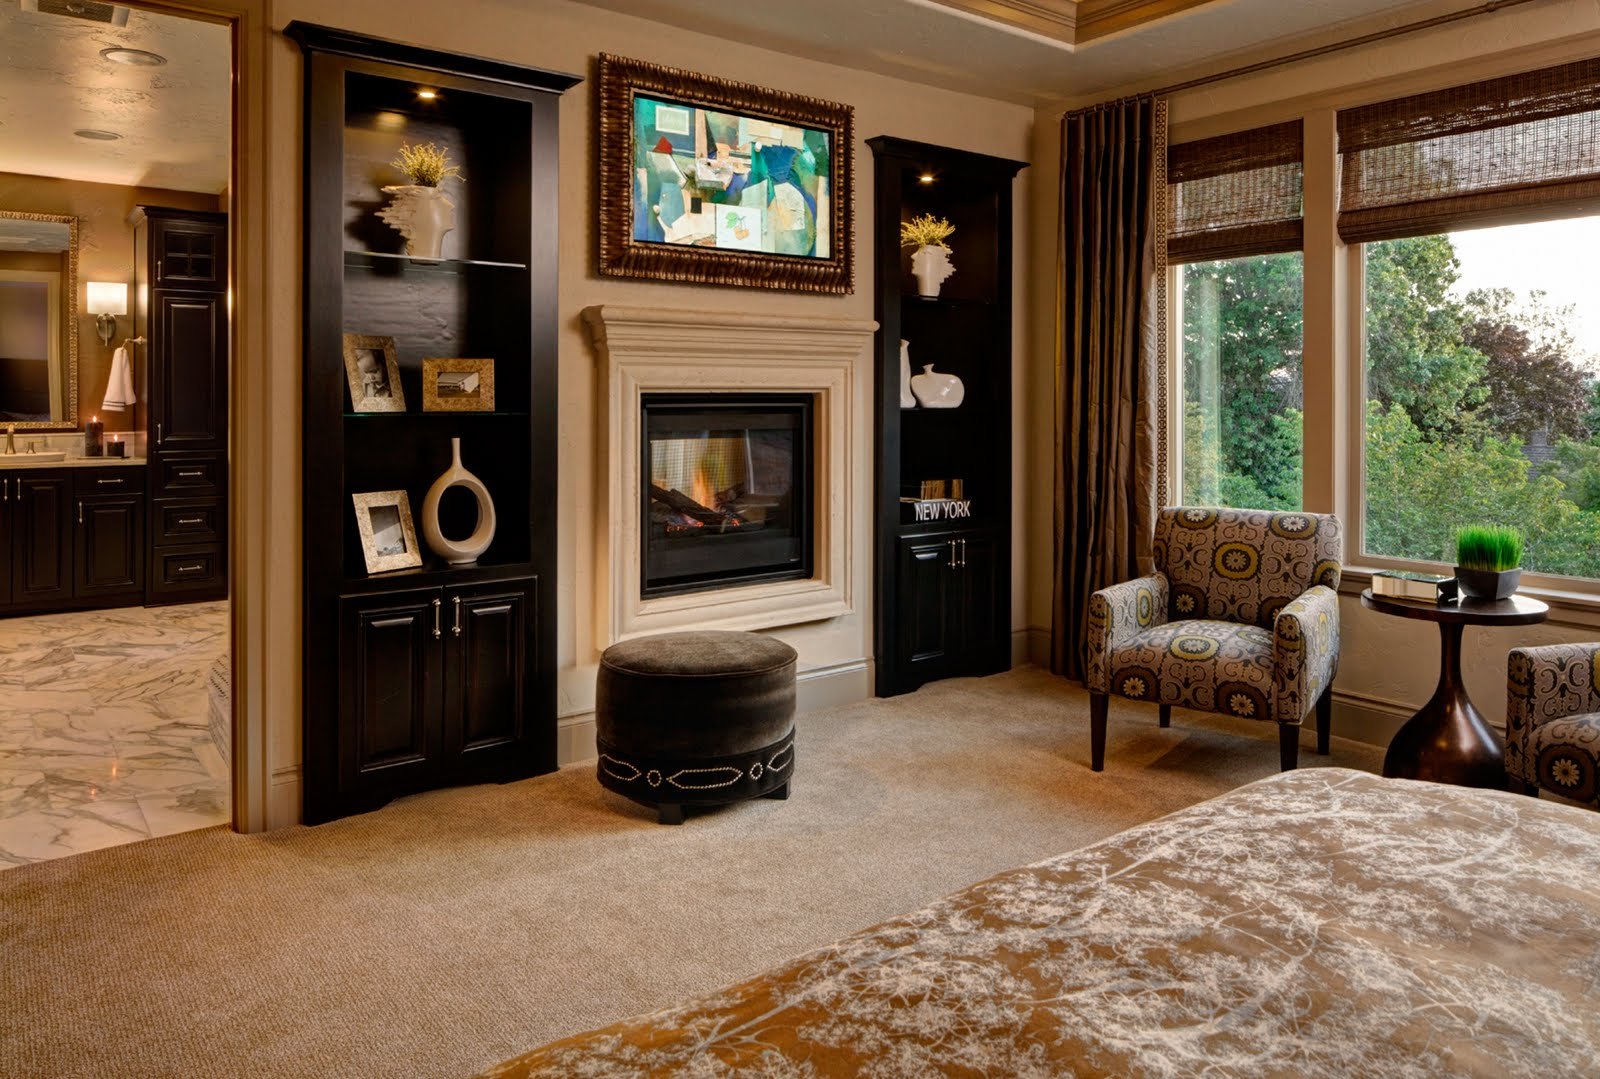 Arbor custom homes on bull mountain chateau marseille new photo 39 s Master bedroom with fireplace images